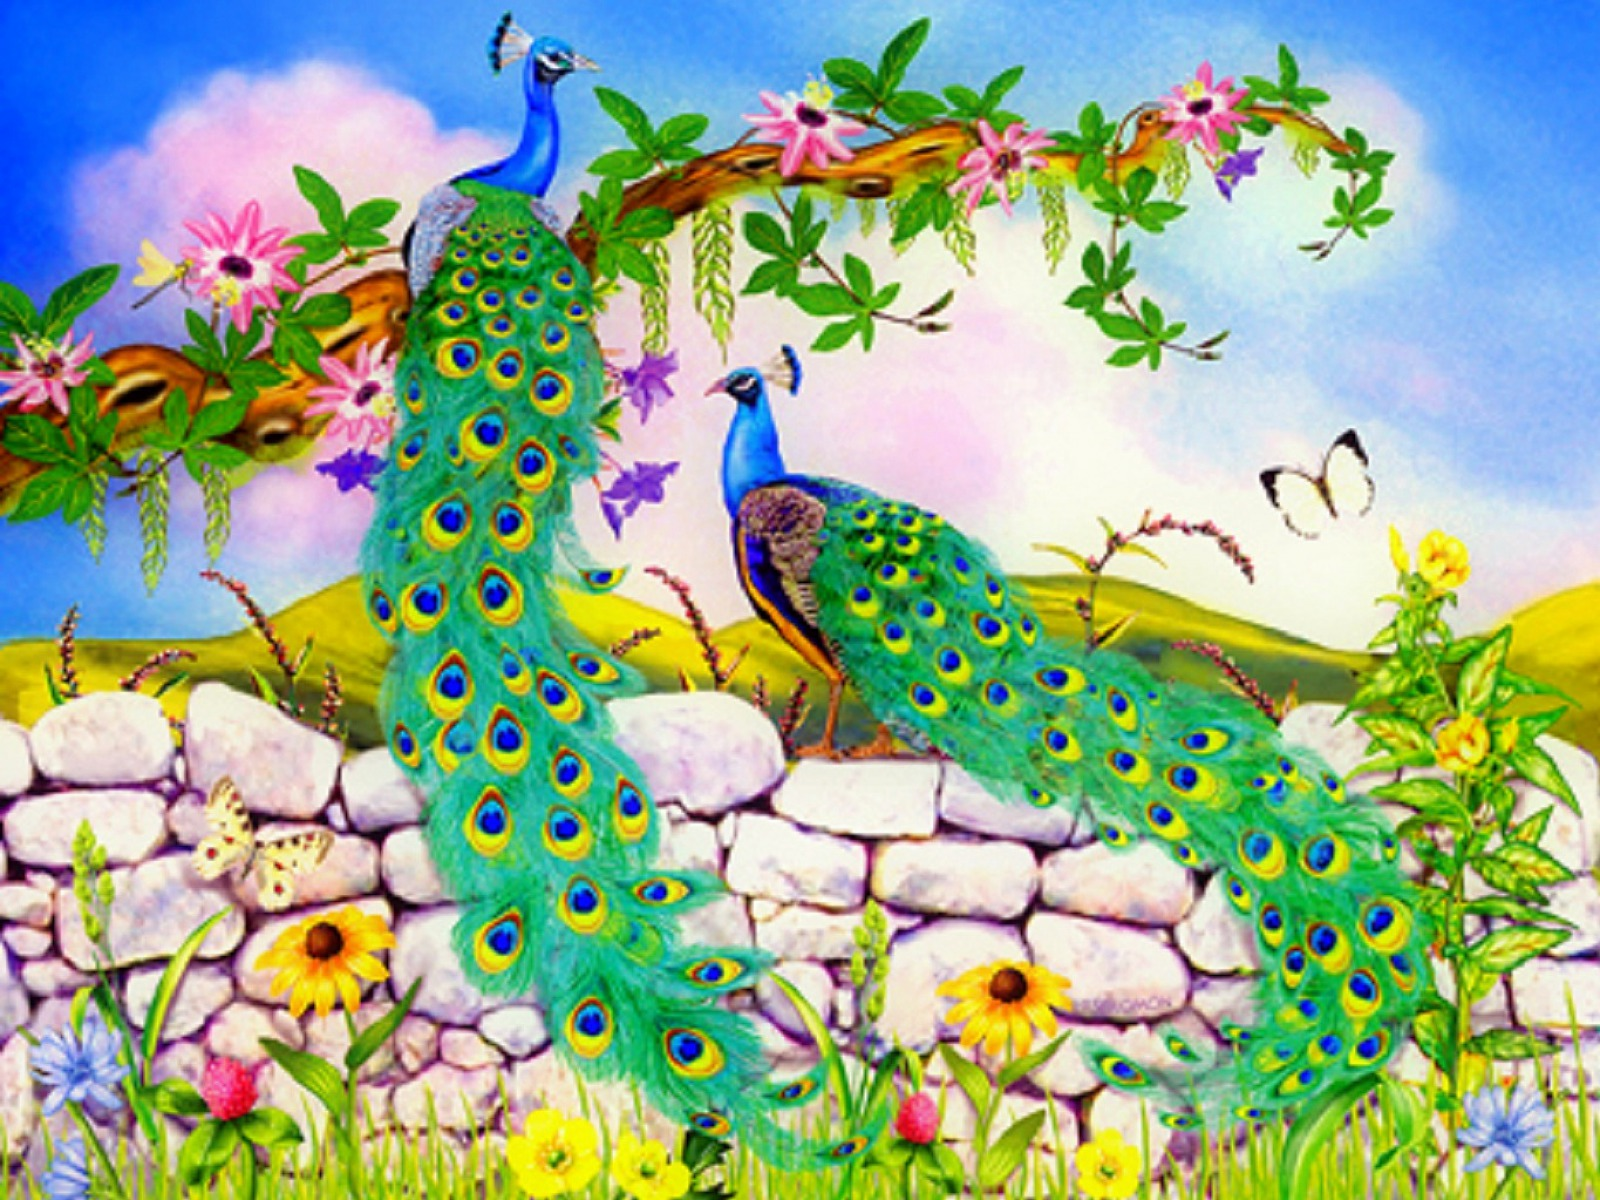 Beautiful Peacocks Stone Wall Wallpapers And Stock - Beautiful Pictures Of Flowers And Butterflies Birds , HD Wallpaper & Backgrounds